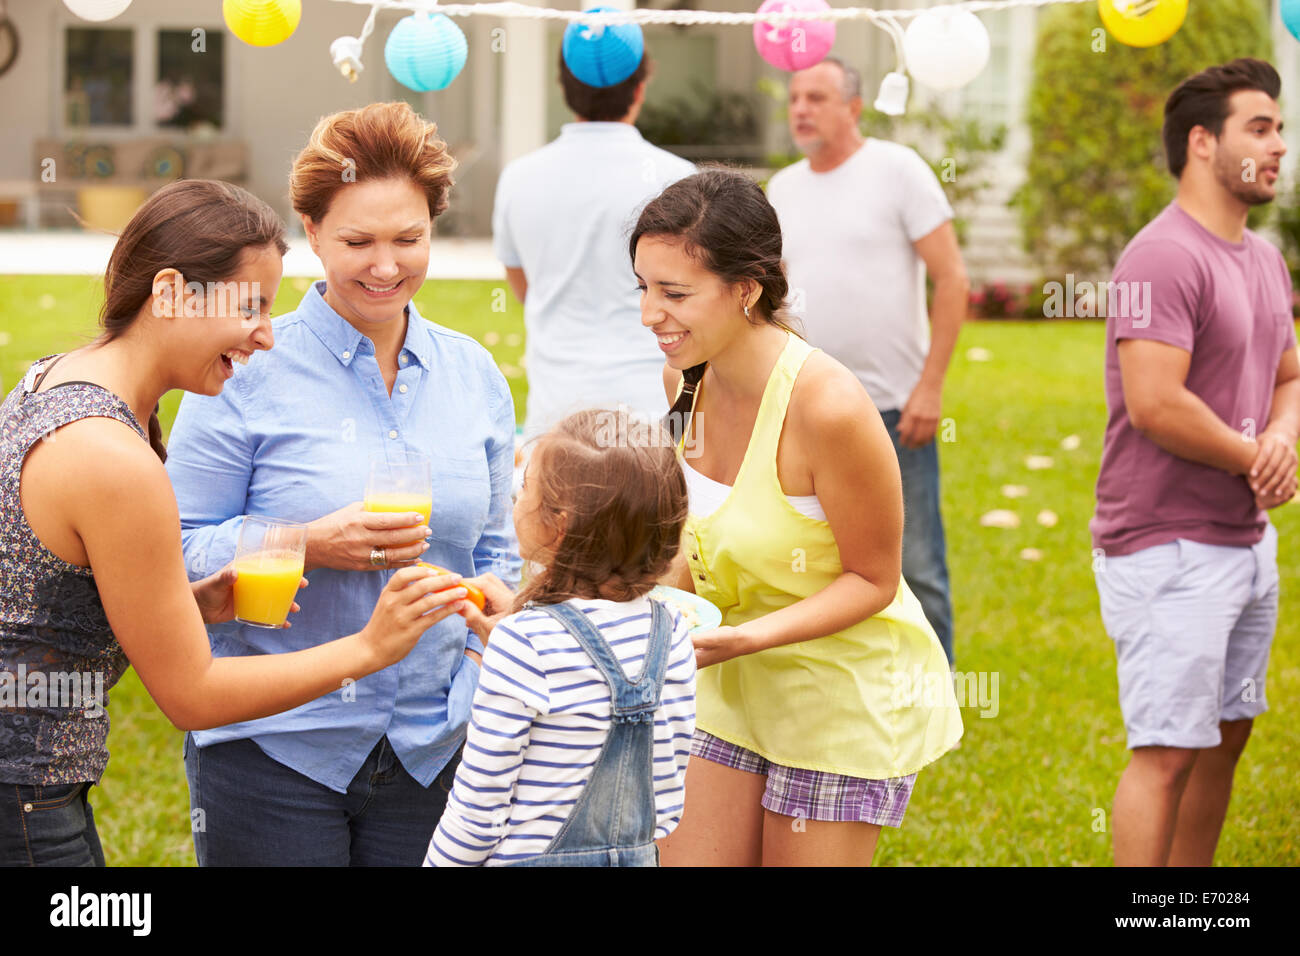 Multi Generation Family Enjoying Party In Garden Together - Stock Image